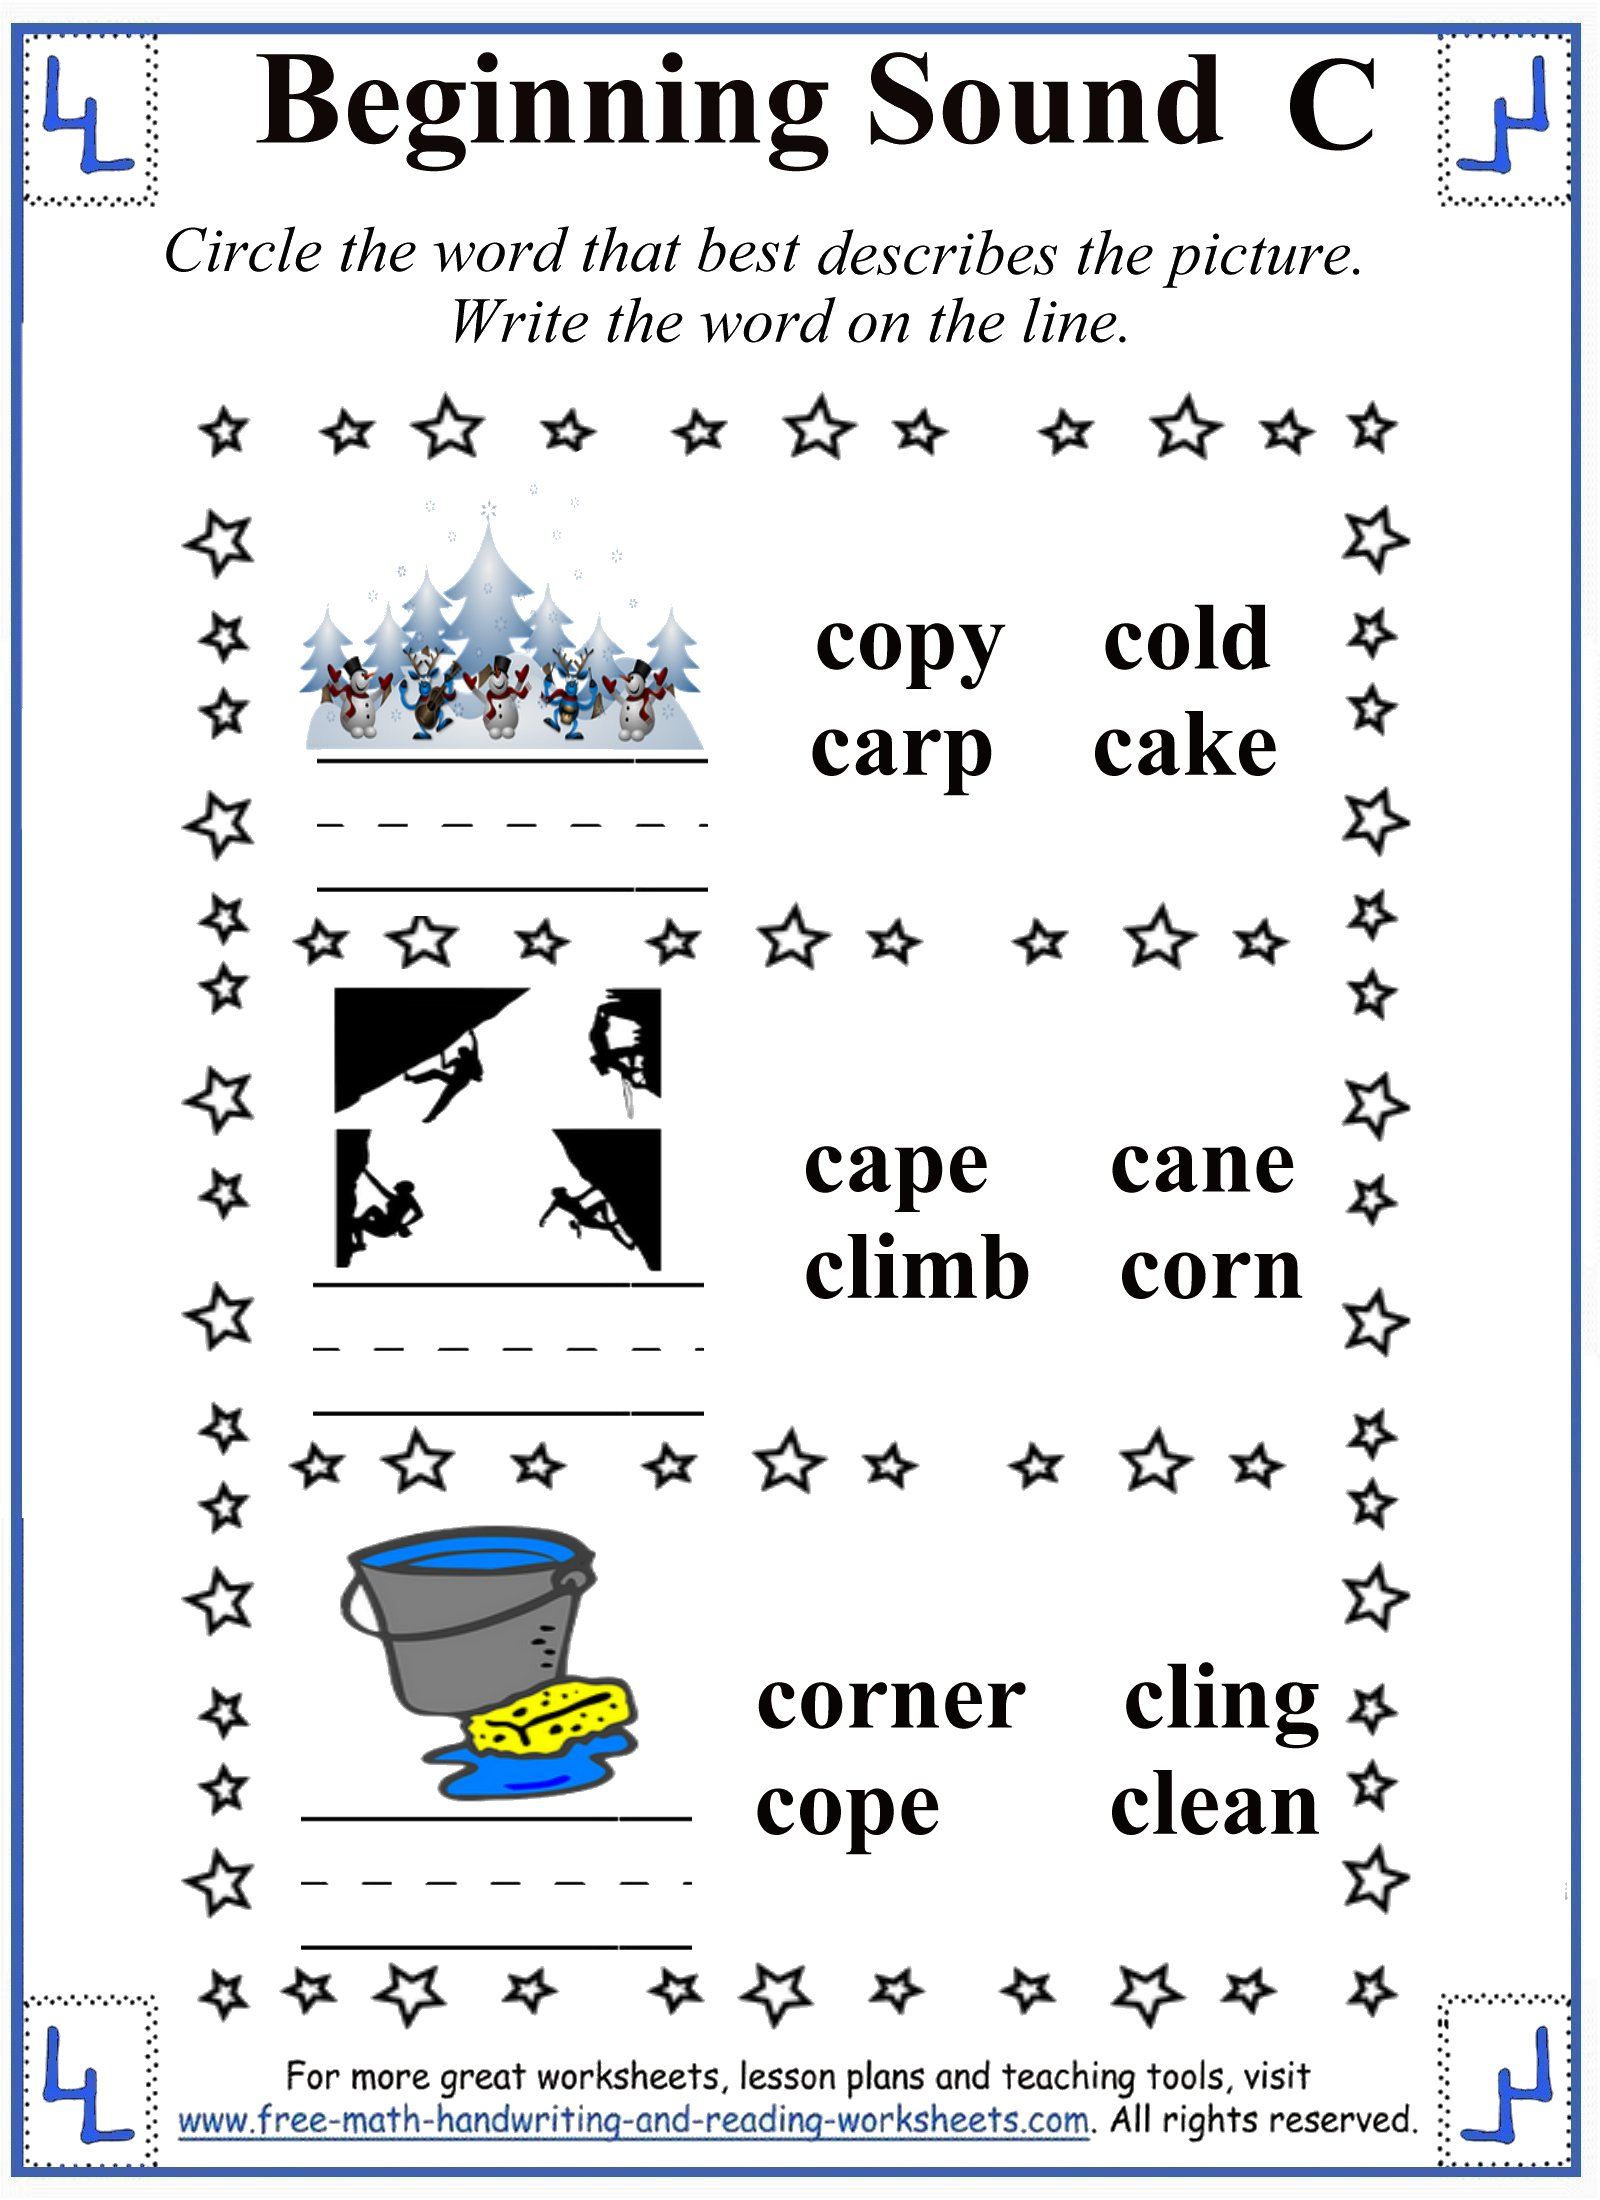 Spelling Worksheets K5 Learning